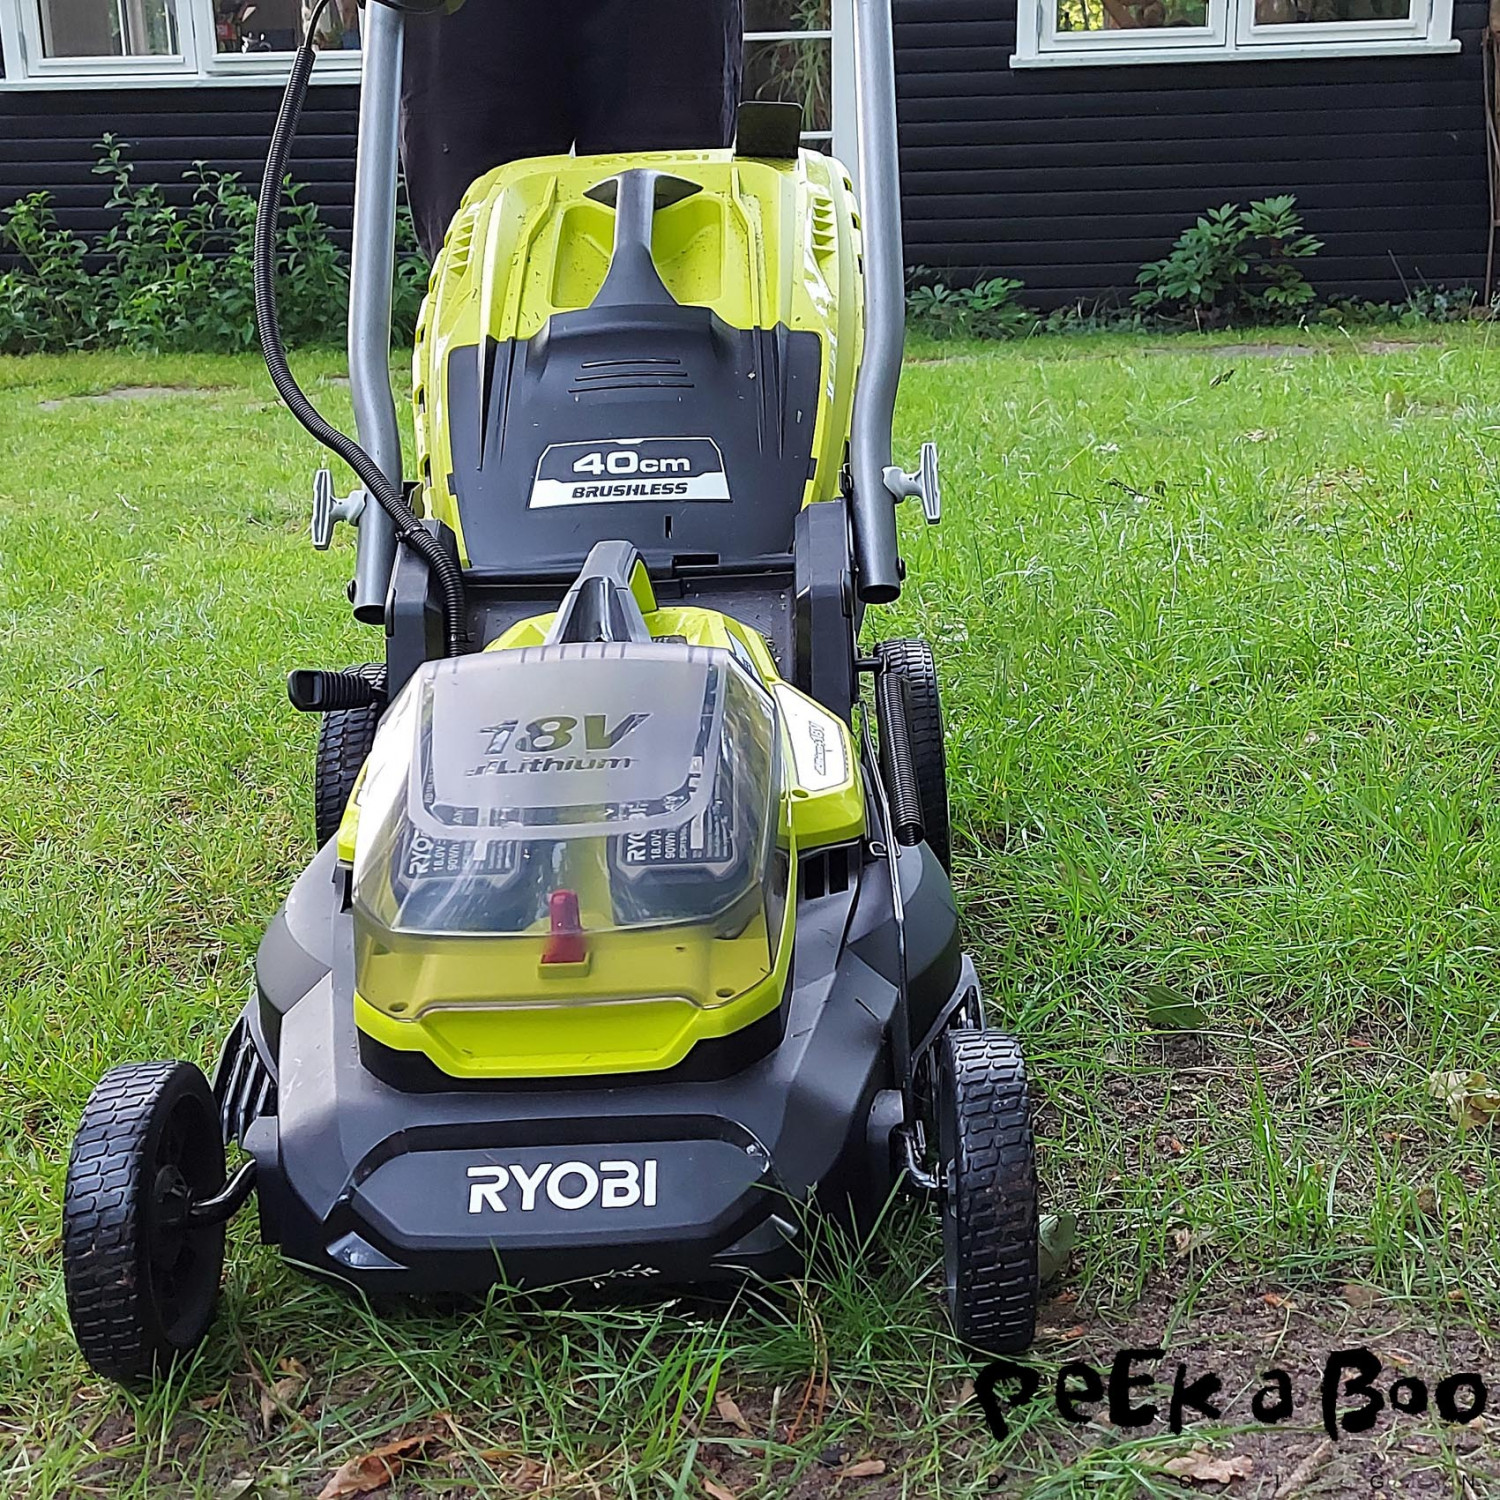 Ryobi RY18LMX40A the batterydriven lawnmover.